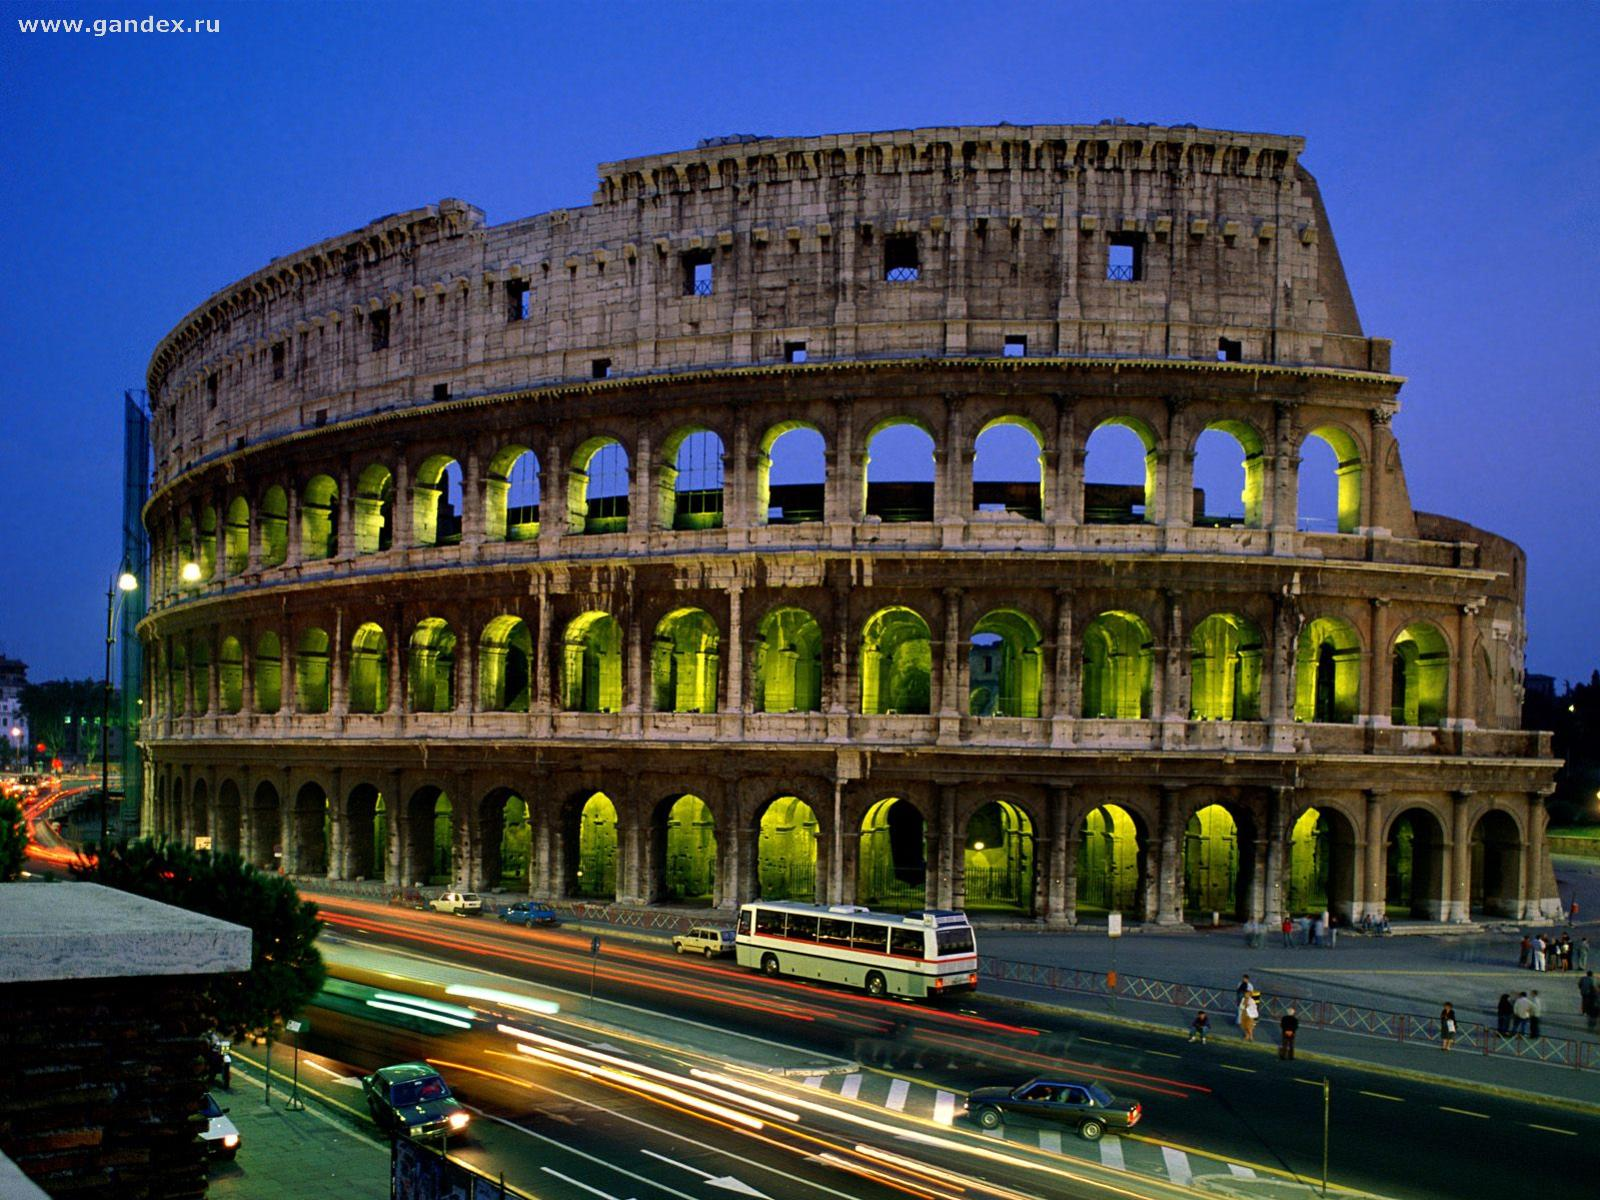 Coliseum, wallpapers for desktop, Rome, Italy